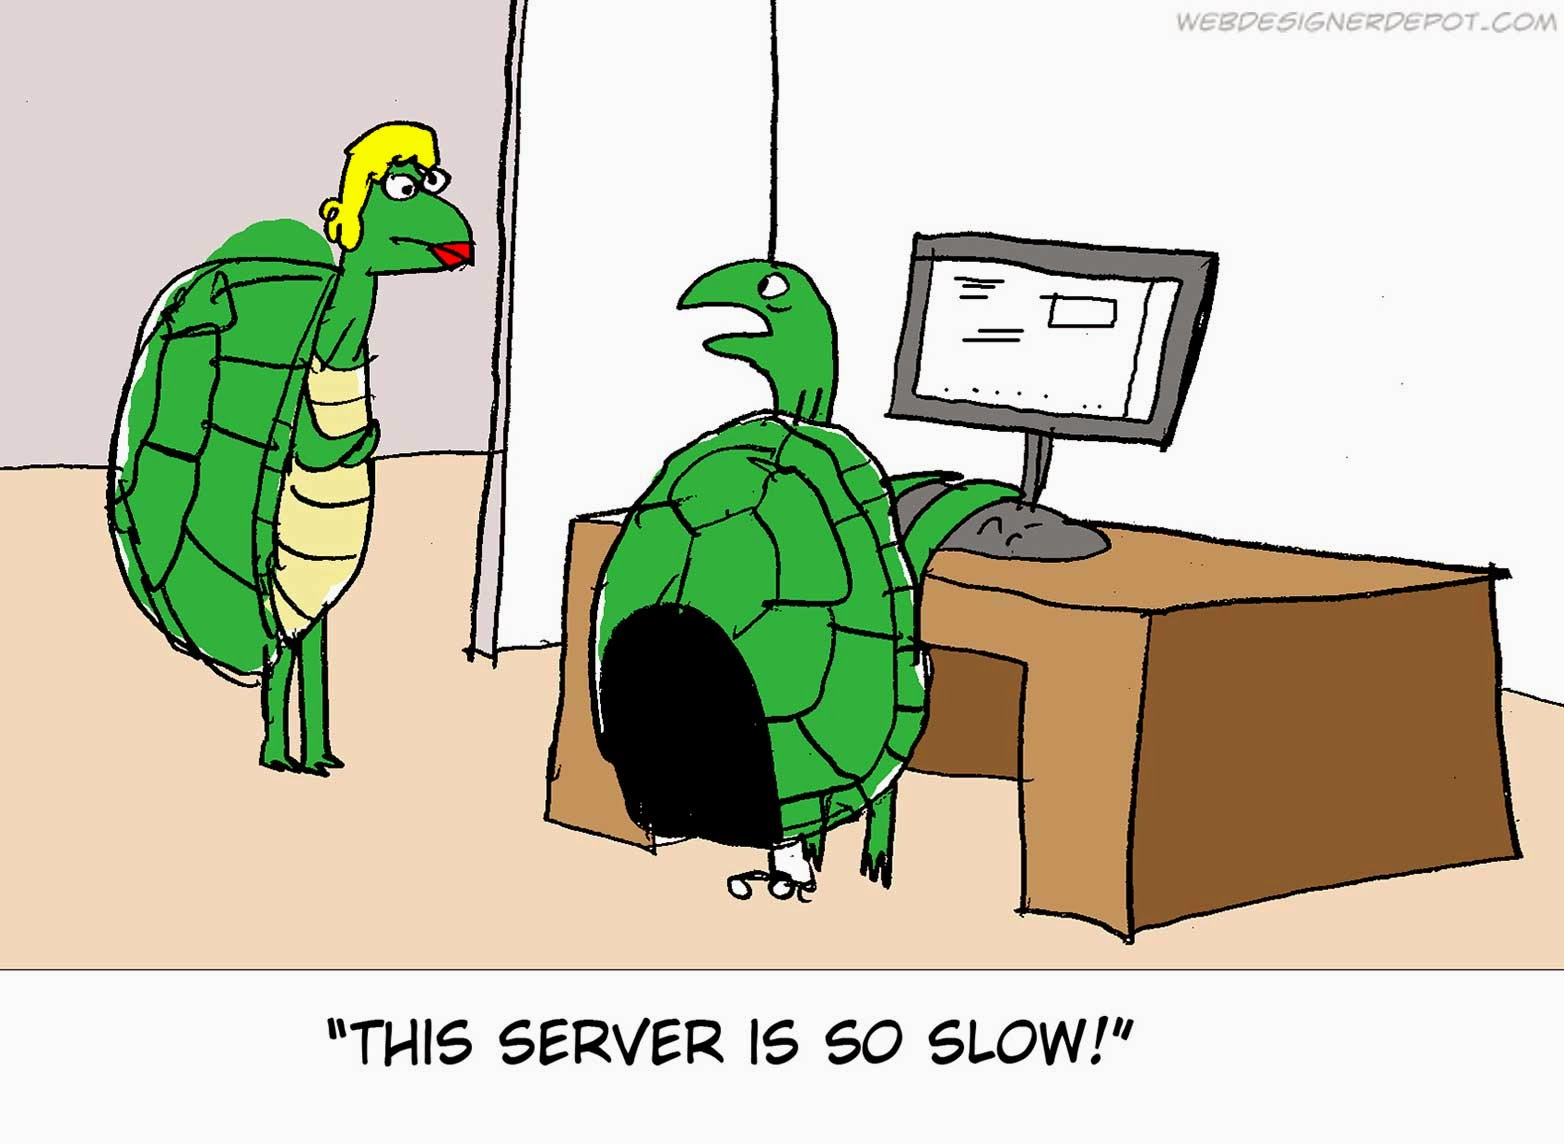 Troubleshooting Citrix Slow Performance Issues Part1 - RootZones